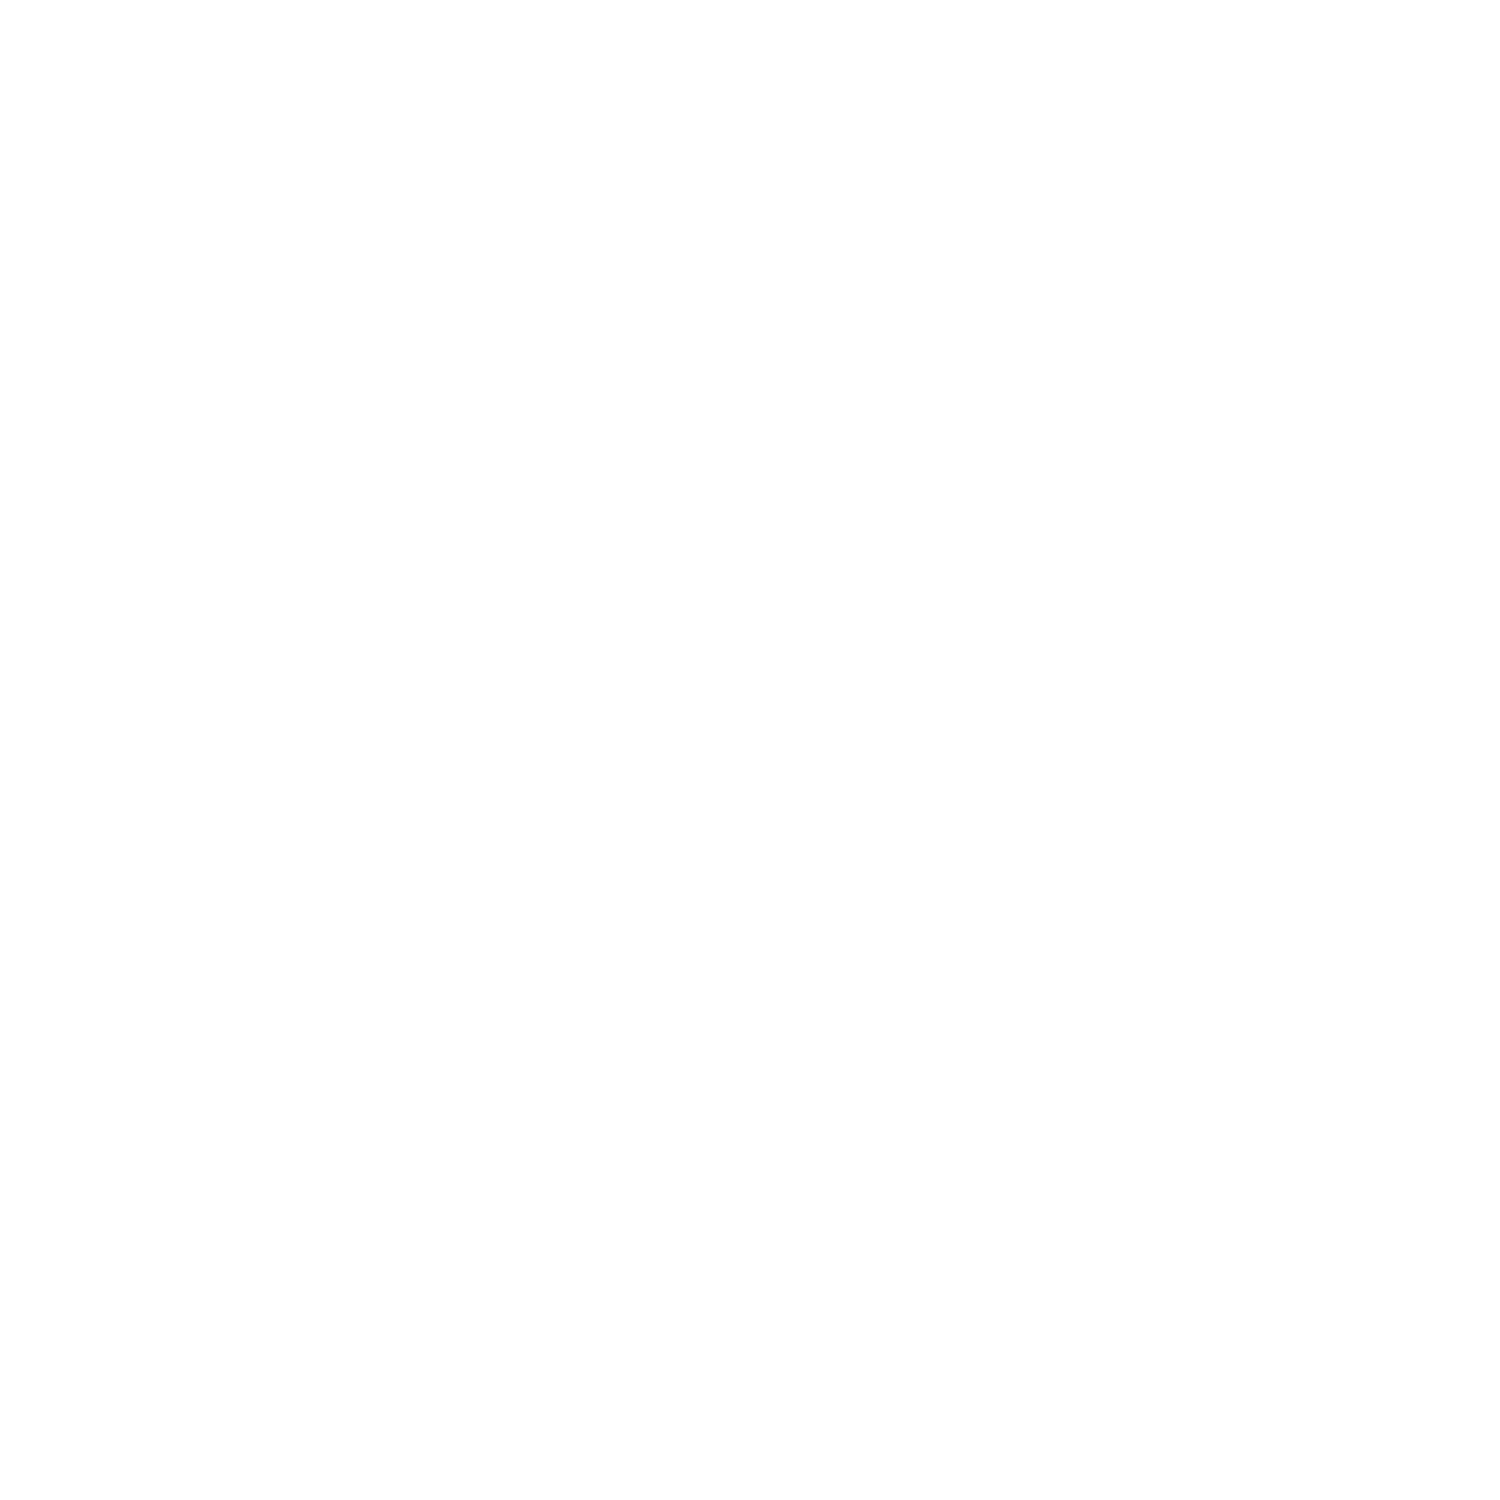 Chris Zielecki Photography